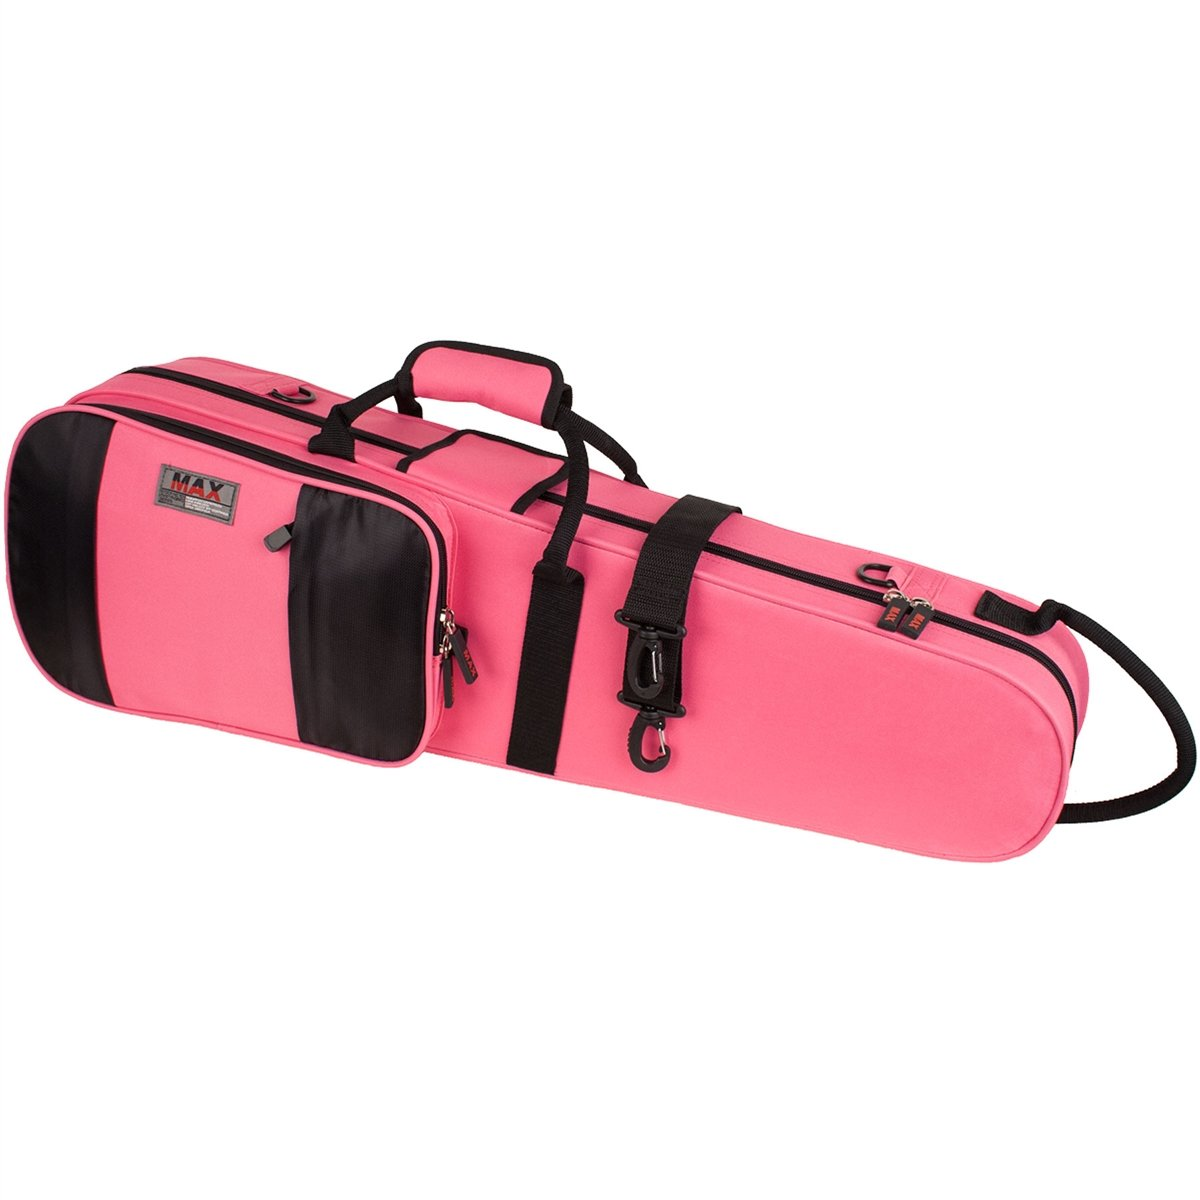 Protec - Violin MAX Case (Shaped)-Accessories-Protec-Fuchsia/Pink-Music Elements